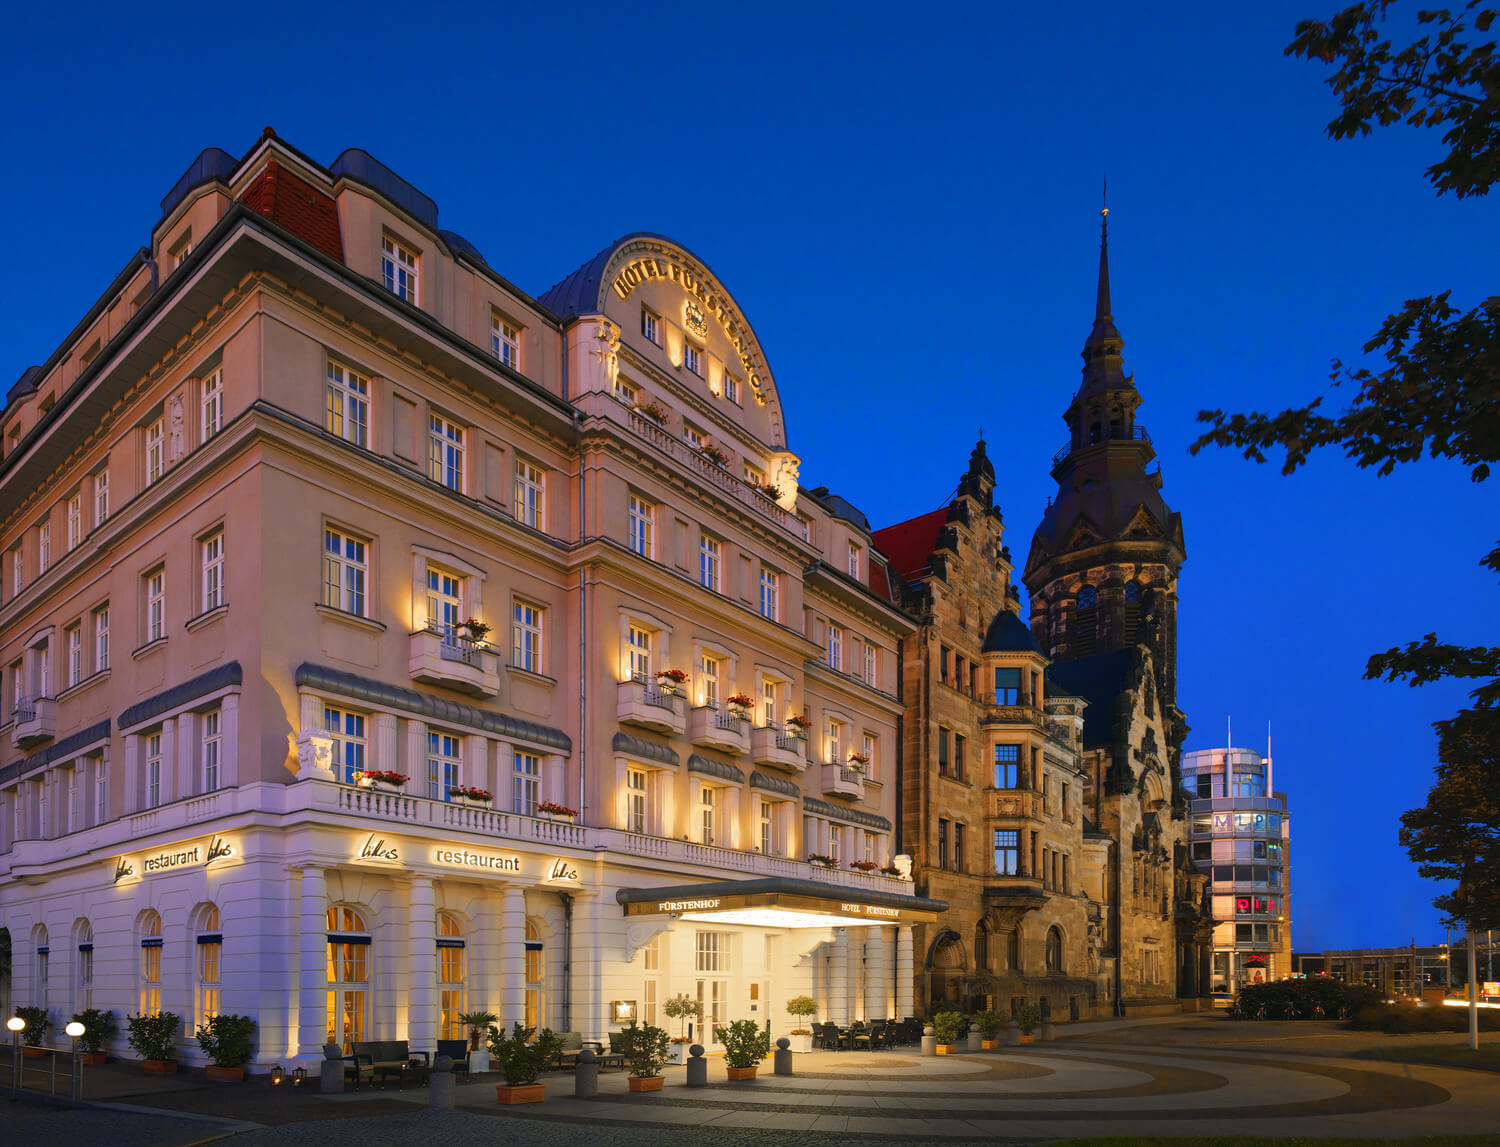 stunden hotel leipzig extremely private com